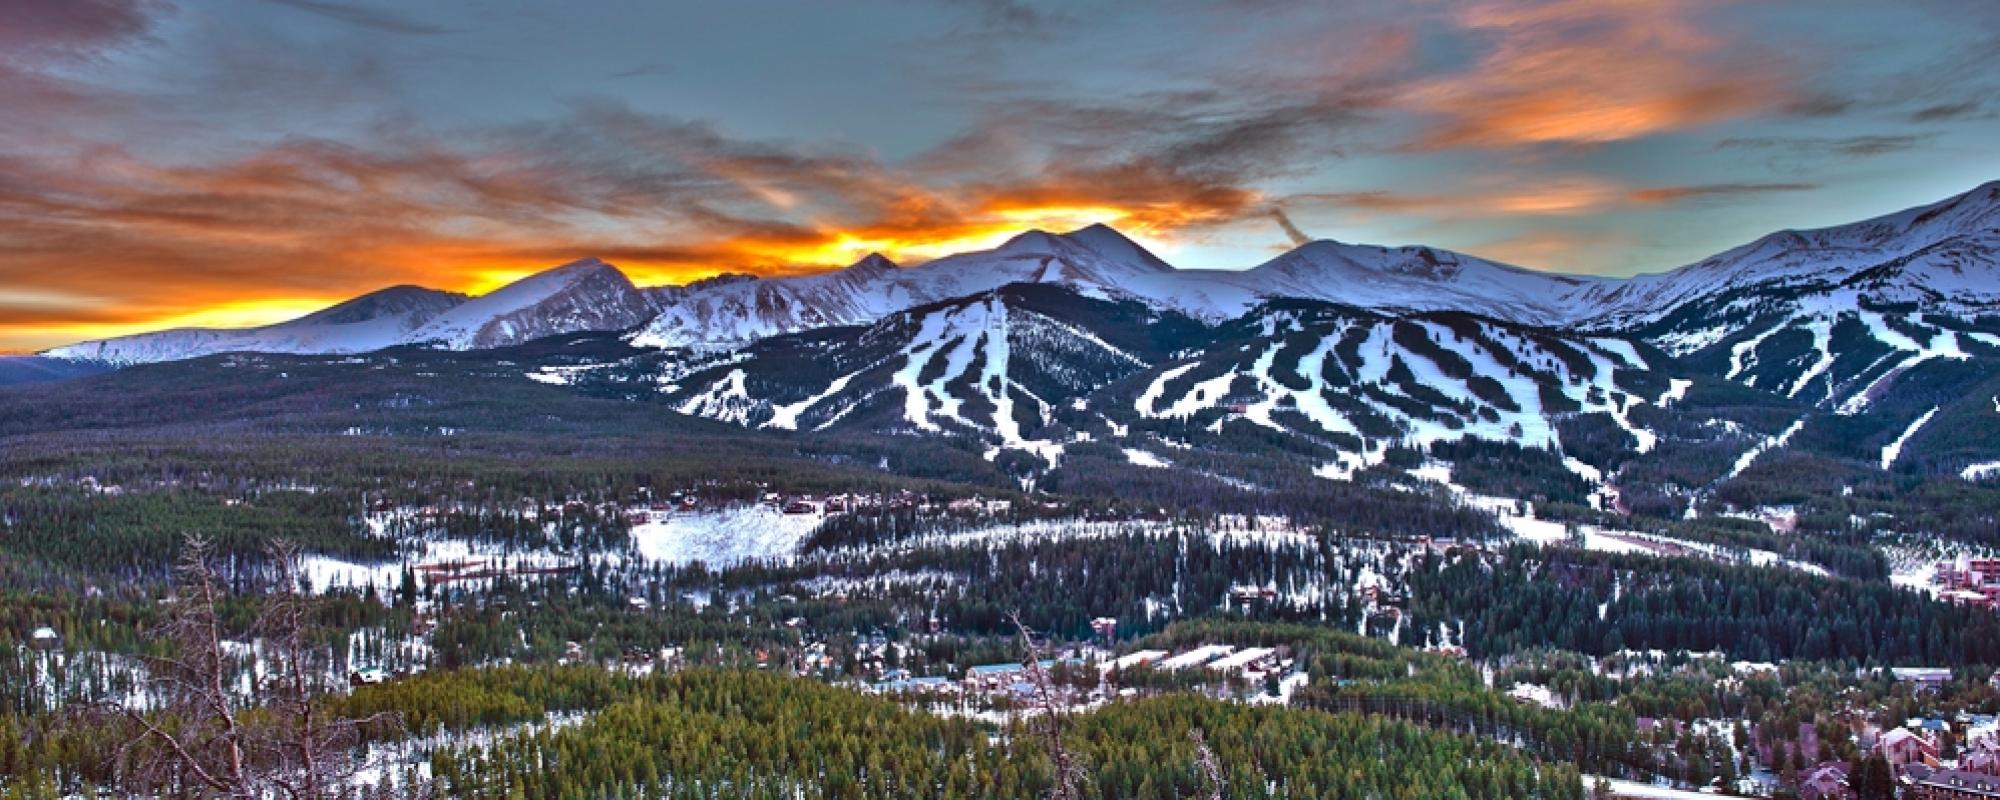 winter sunset in Breckenridge